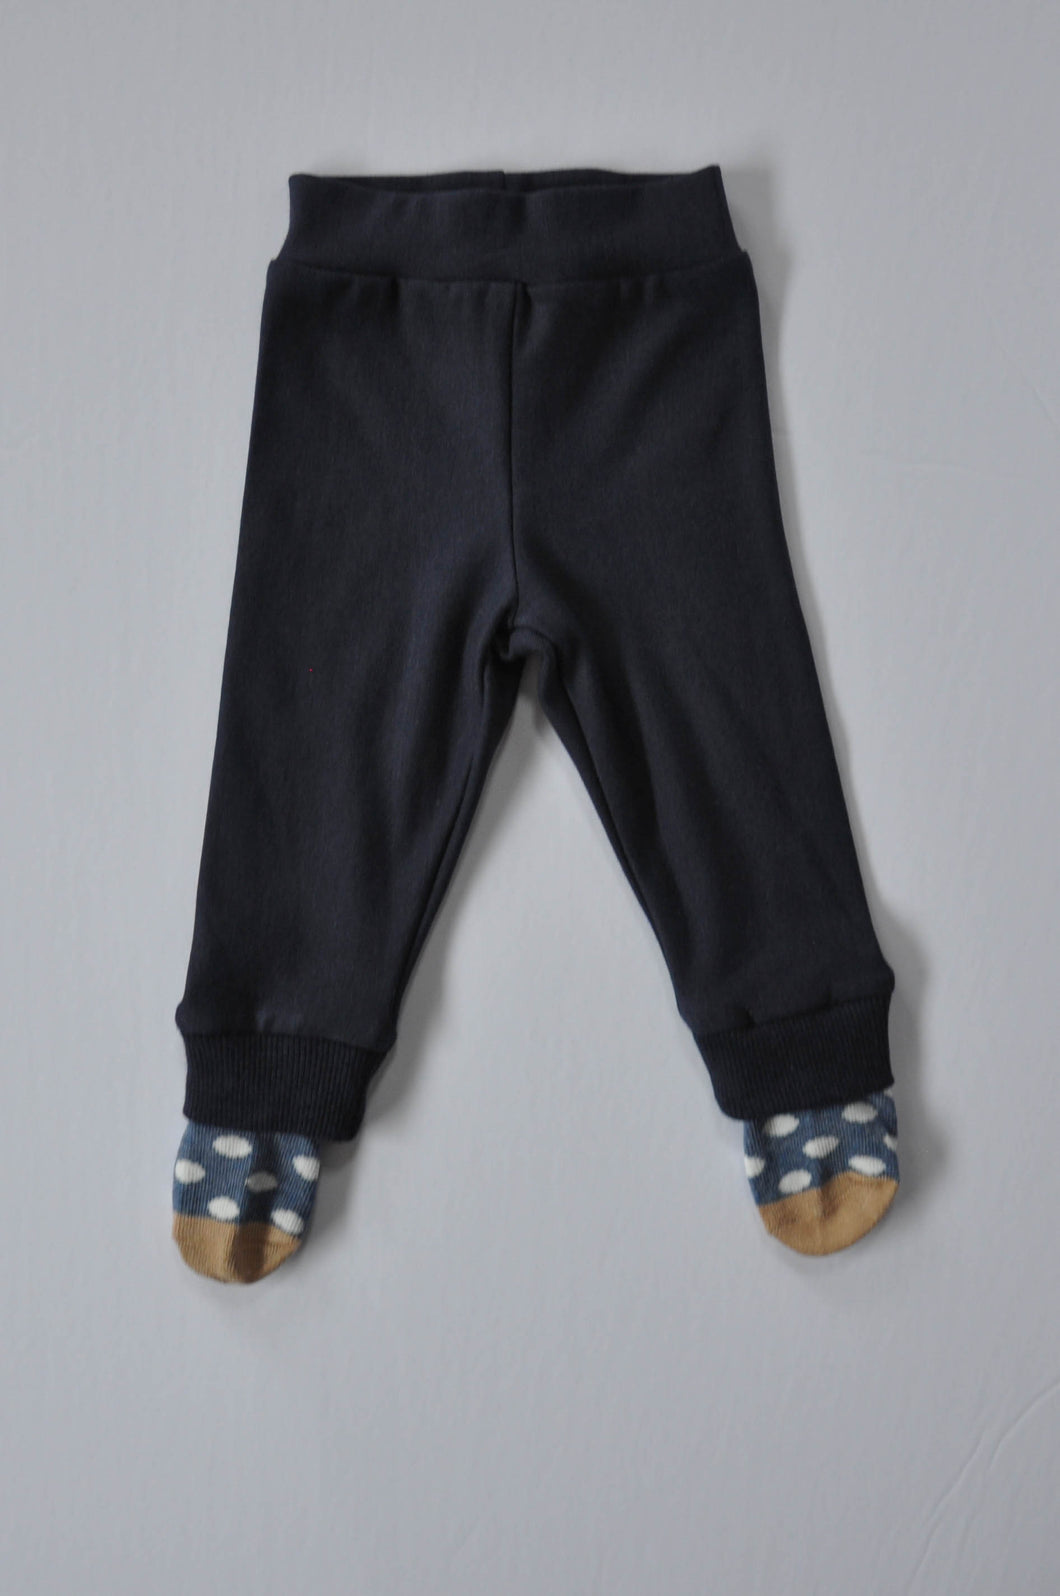 Classic Navy Leggings with Blue Polka Dot Socks